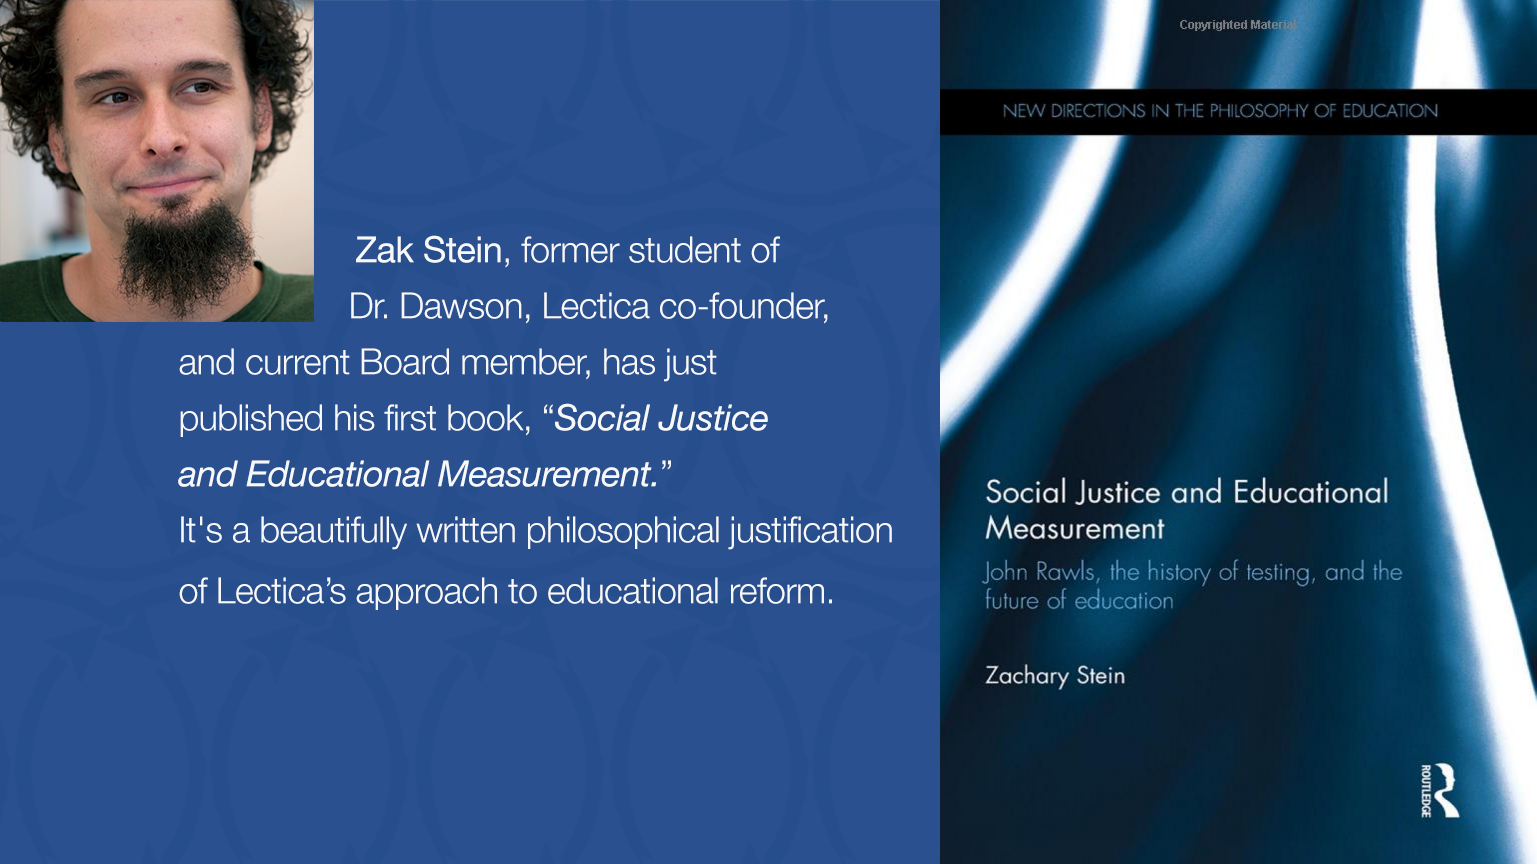 Zak Stein's book, Social Justice and Educational Measurement, has been published.